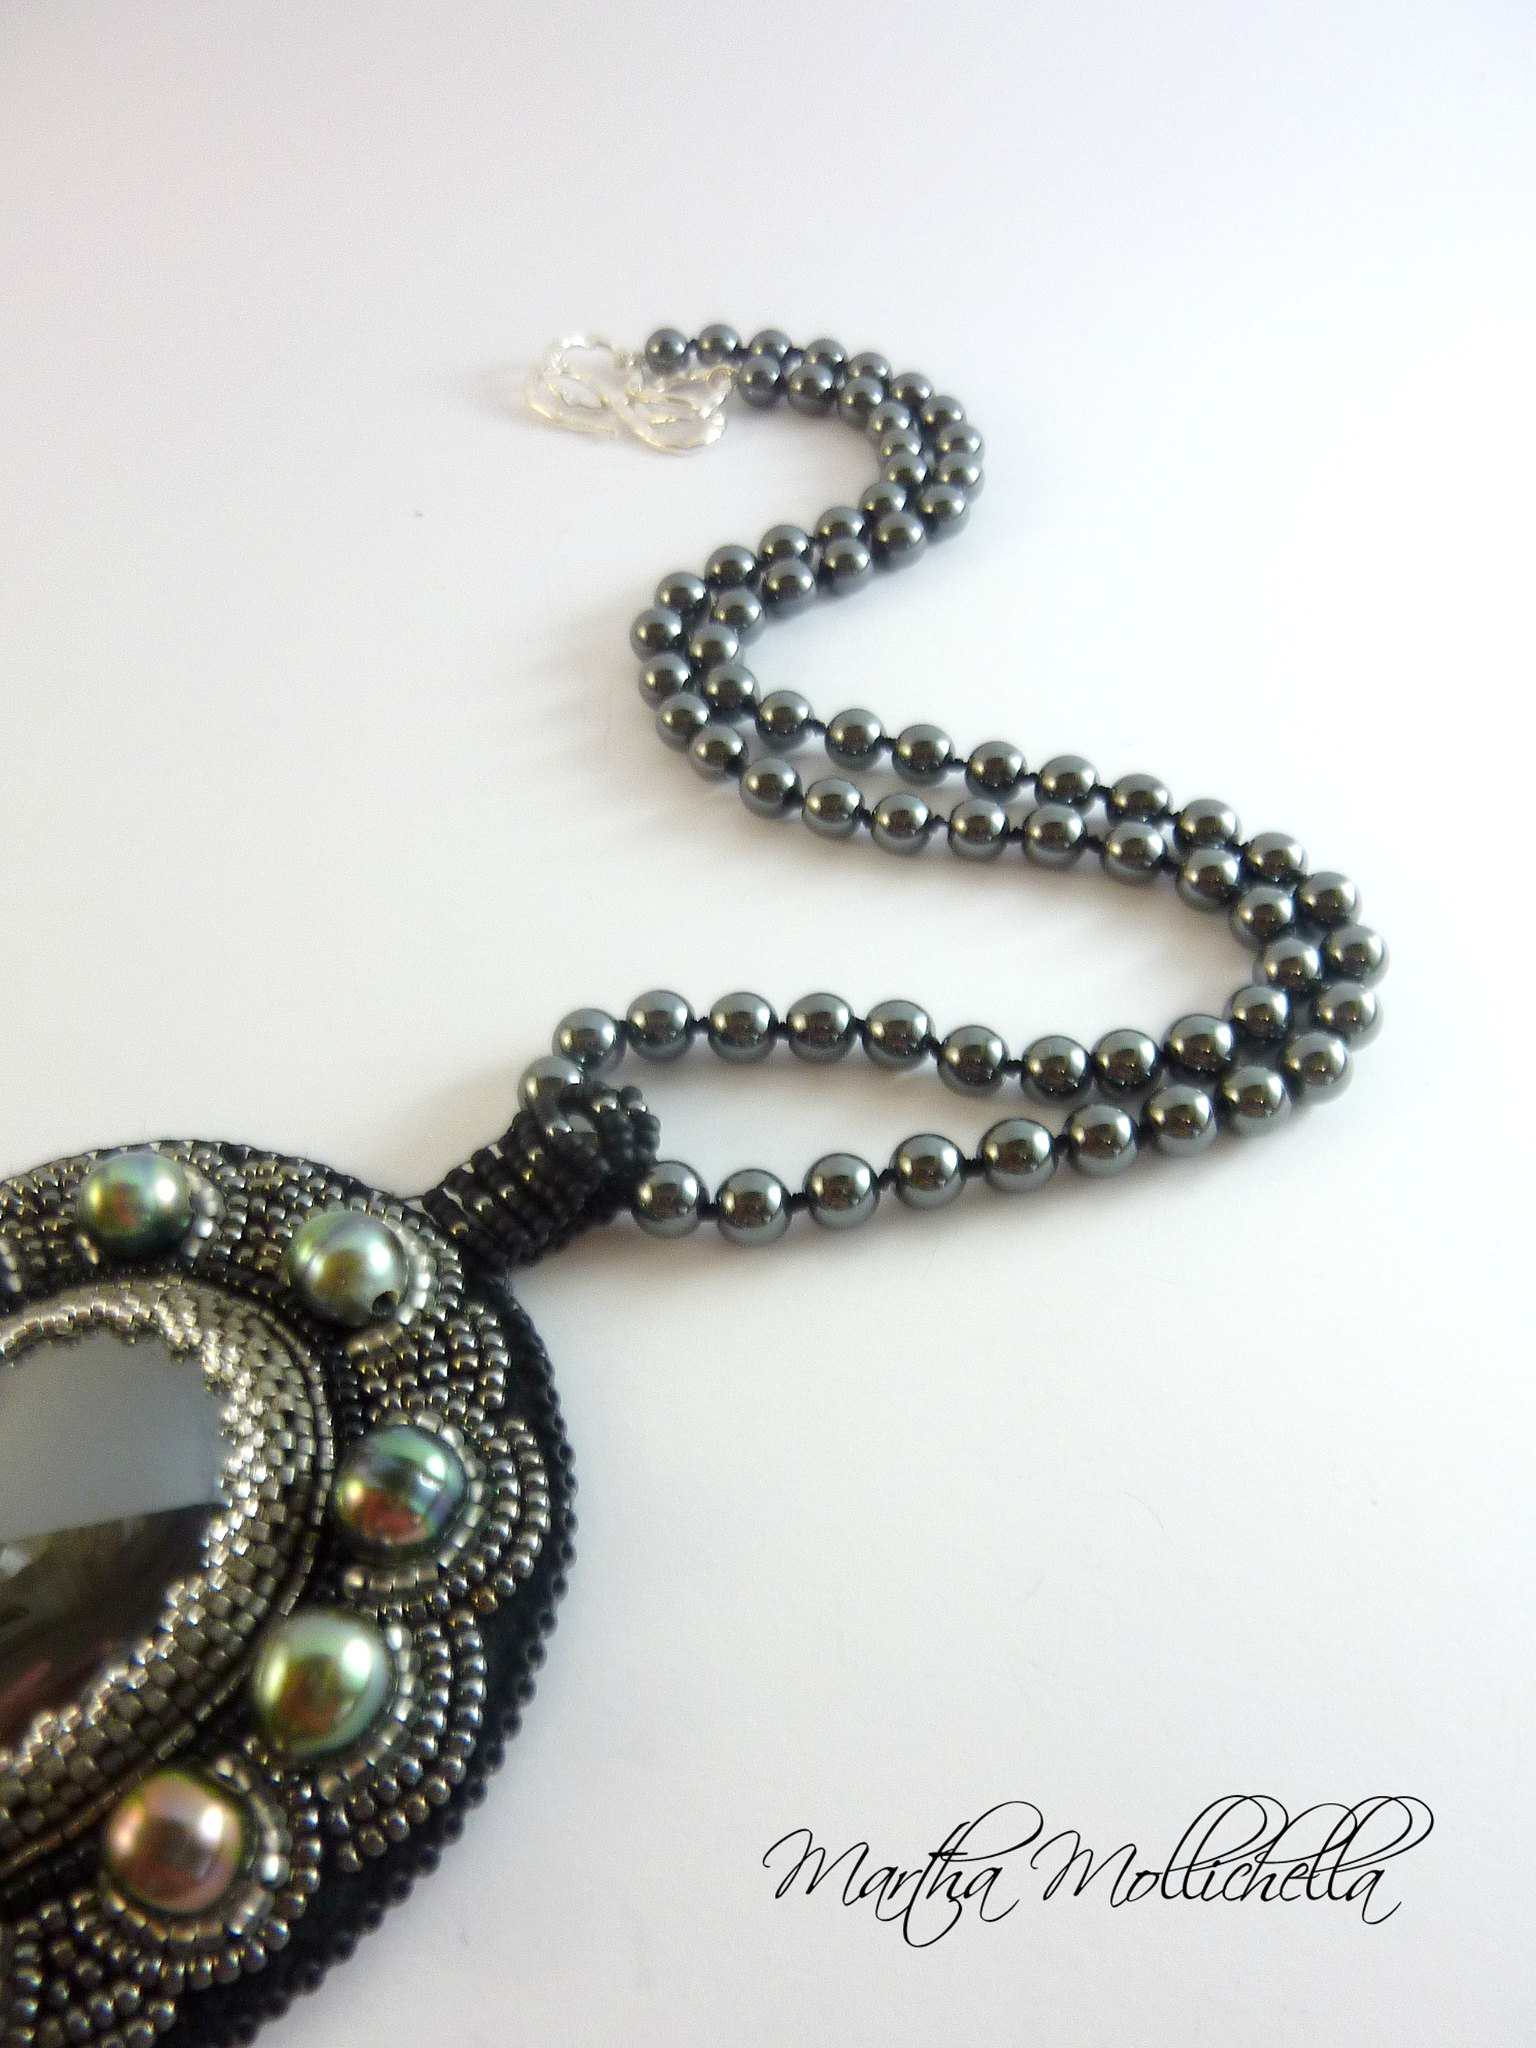 Polynesian pearls handmade with black pearls, beads, hematite pearls, sterling silver 925 handmade in Italy